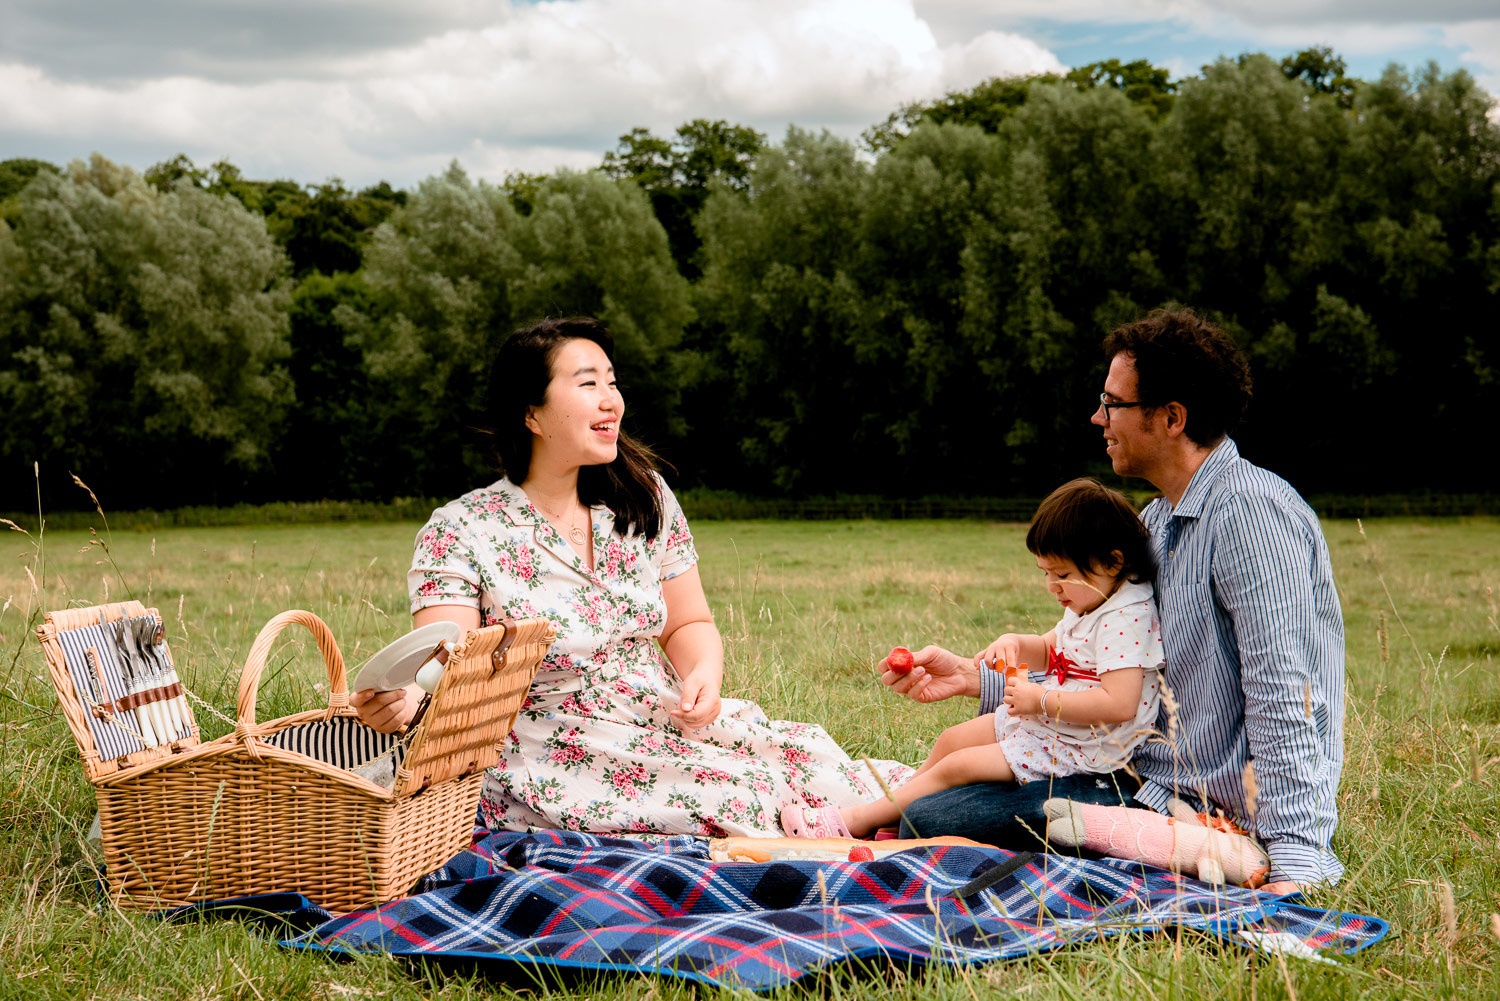 Having a picnic in the Cotswolds is the epitome of slow travel. It's nothing like the amazing race.